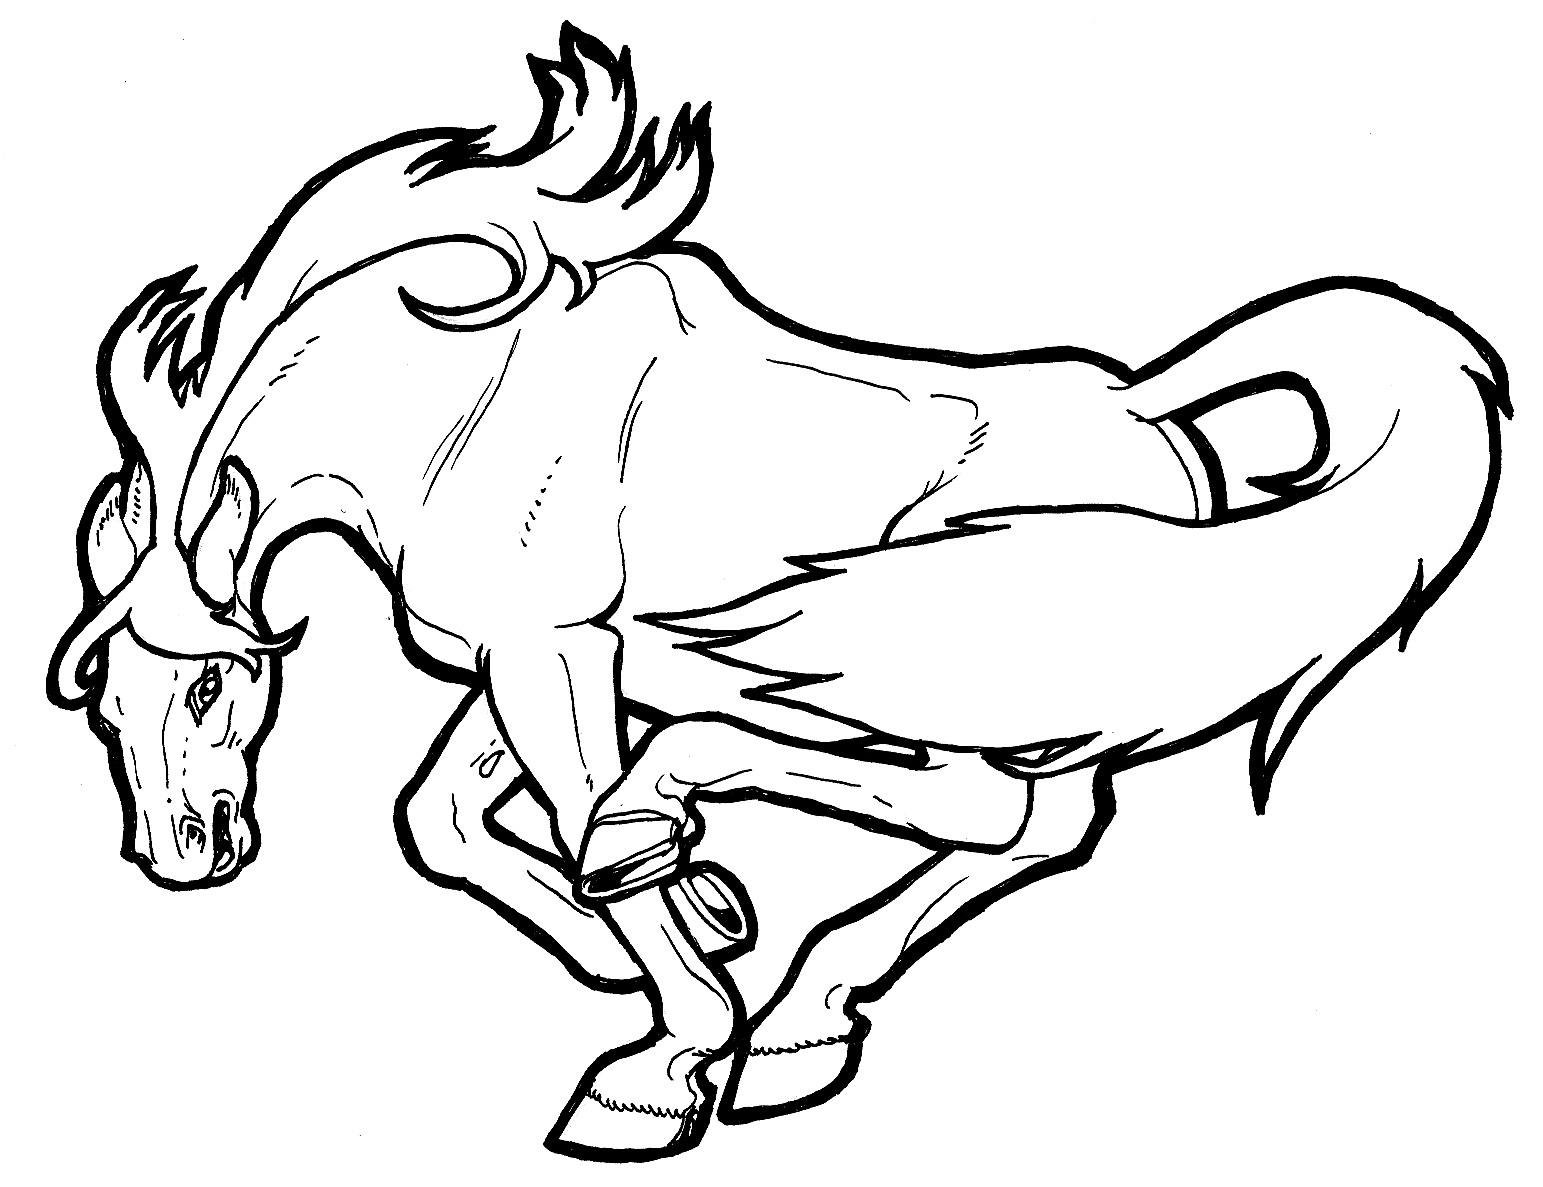 horse coloring pages free horse coloring pages for kids coloring pages for kids horse free coloring pages